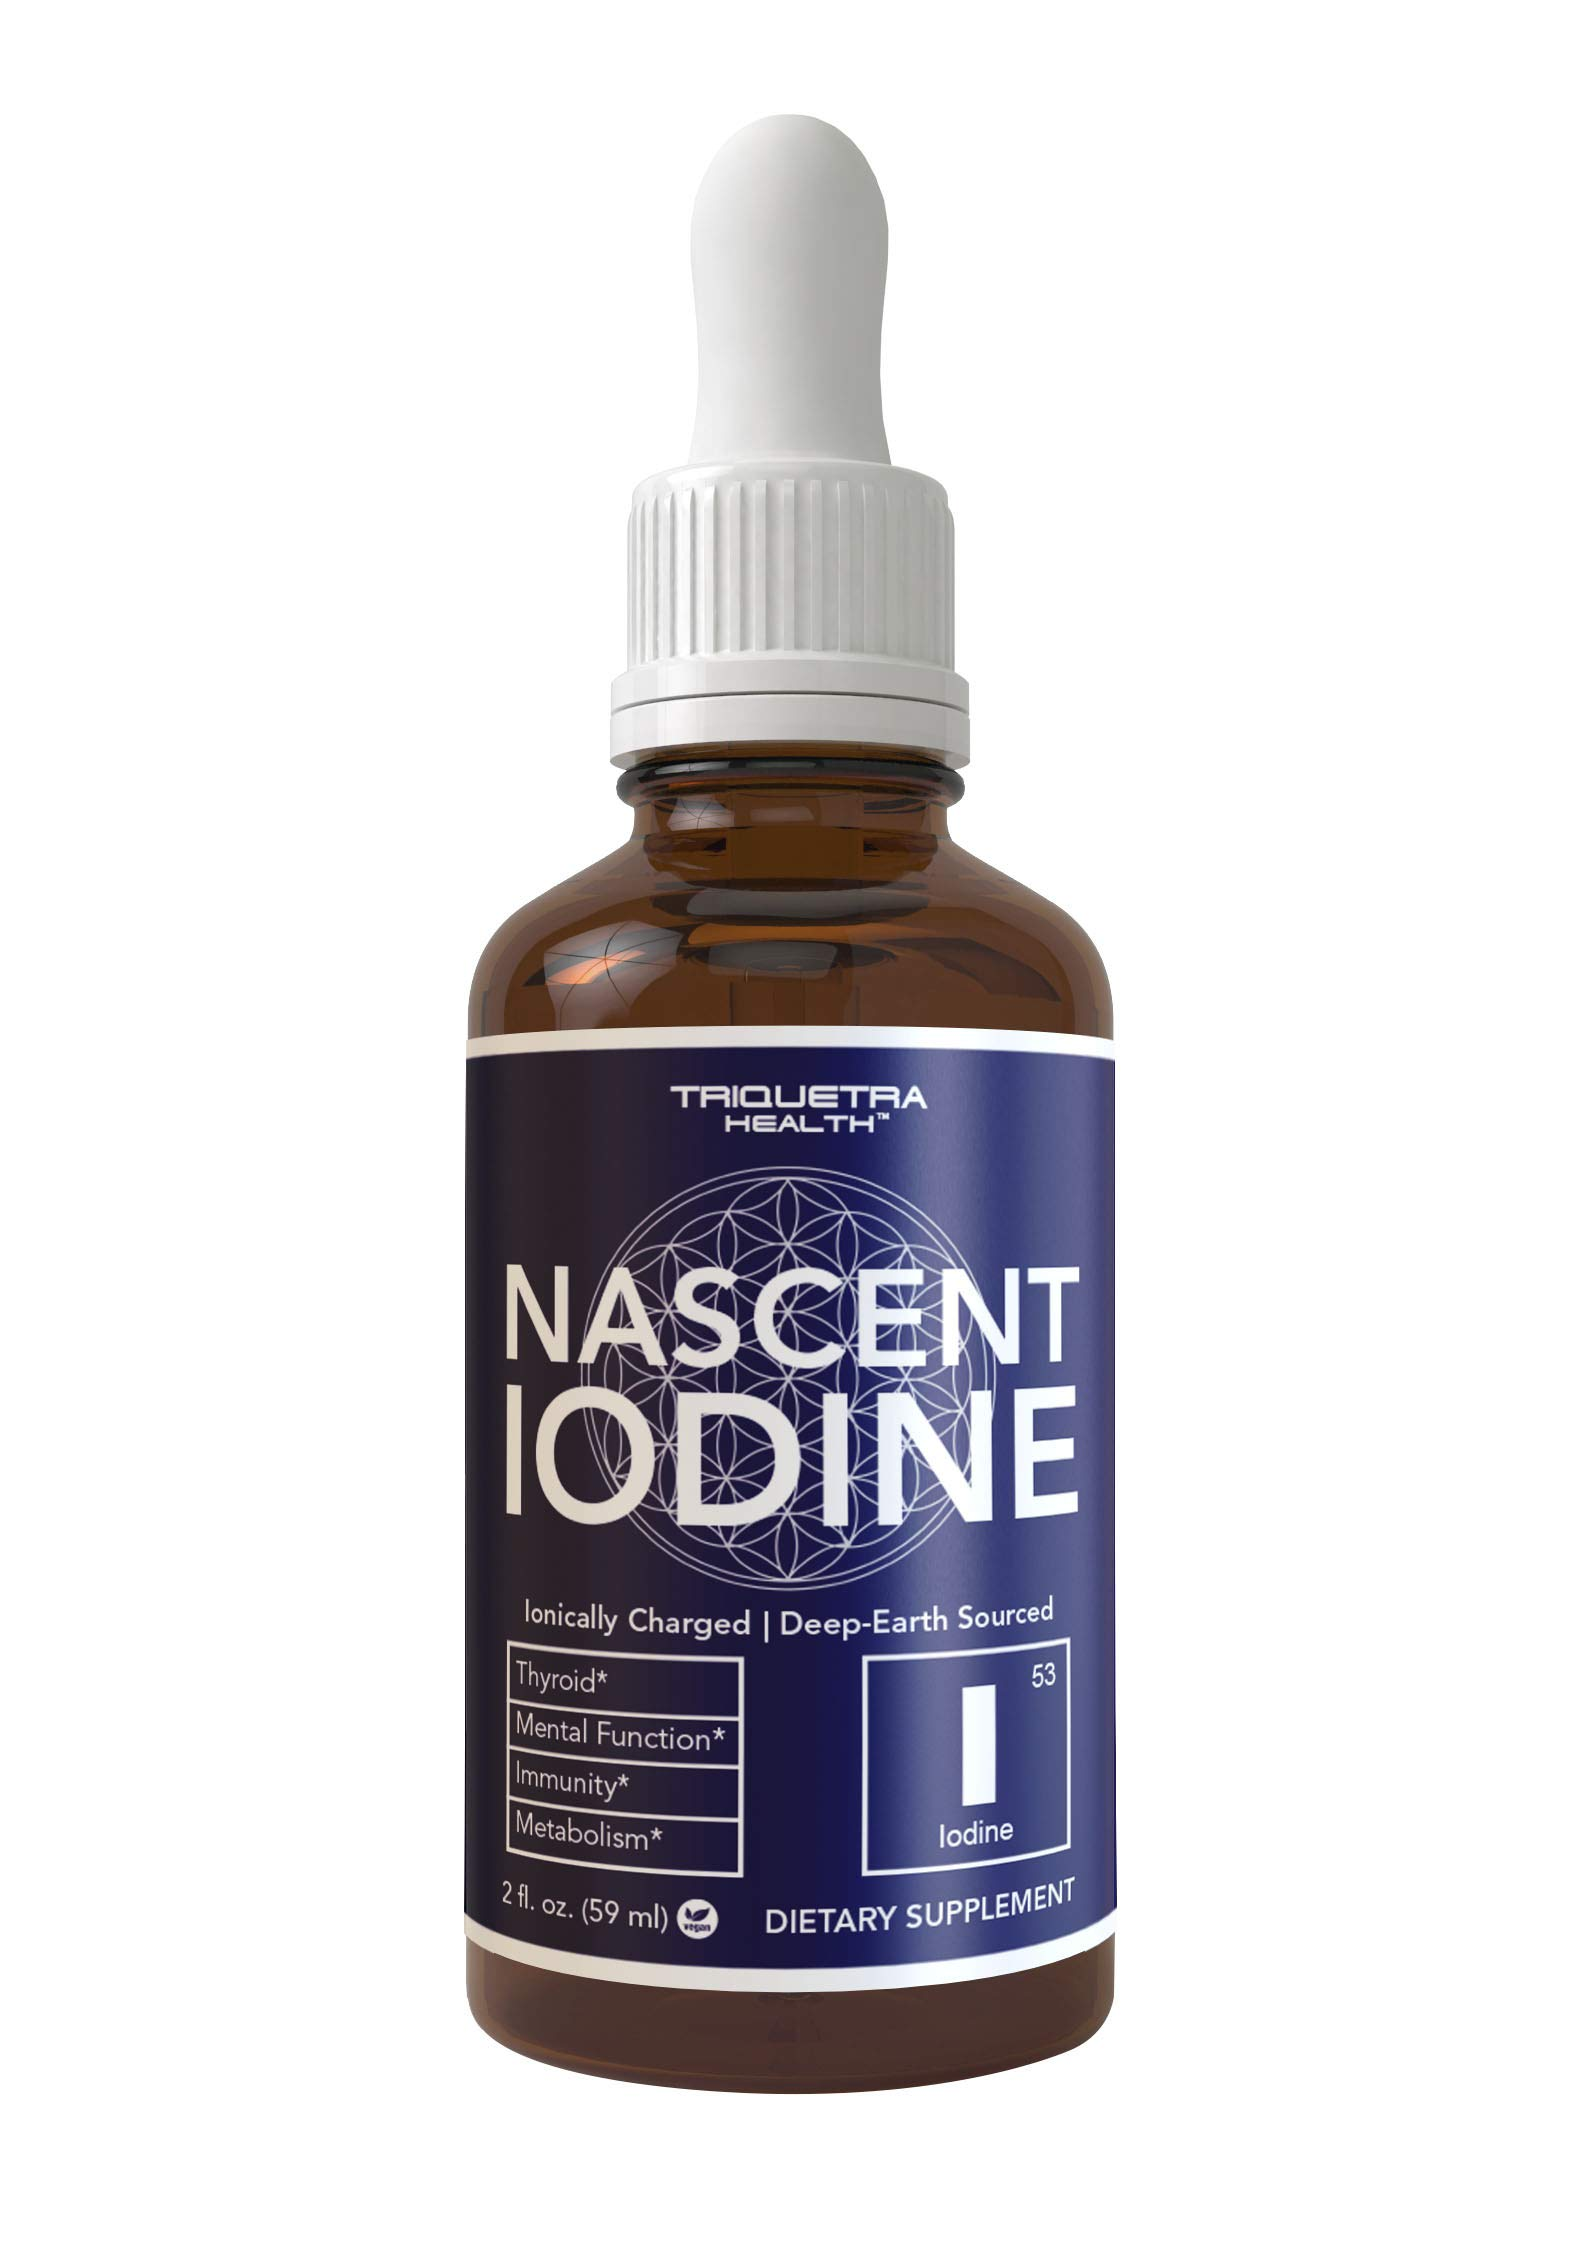 Nascent Iodine Supplement 400 Servings, Glass Bottle, Vegan, 1800 mcg - 600 mcg per Drop - Pure, Clear Color - Supports Thyroid Health, Energy, Immunity & Metabolism (2 oz.)